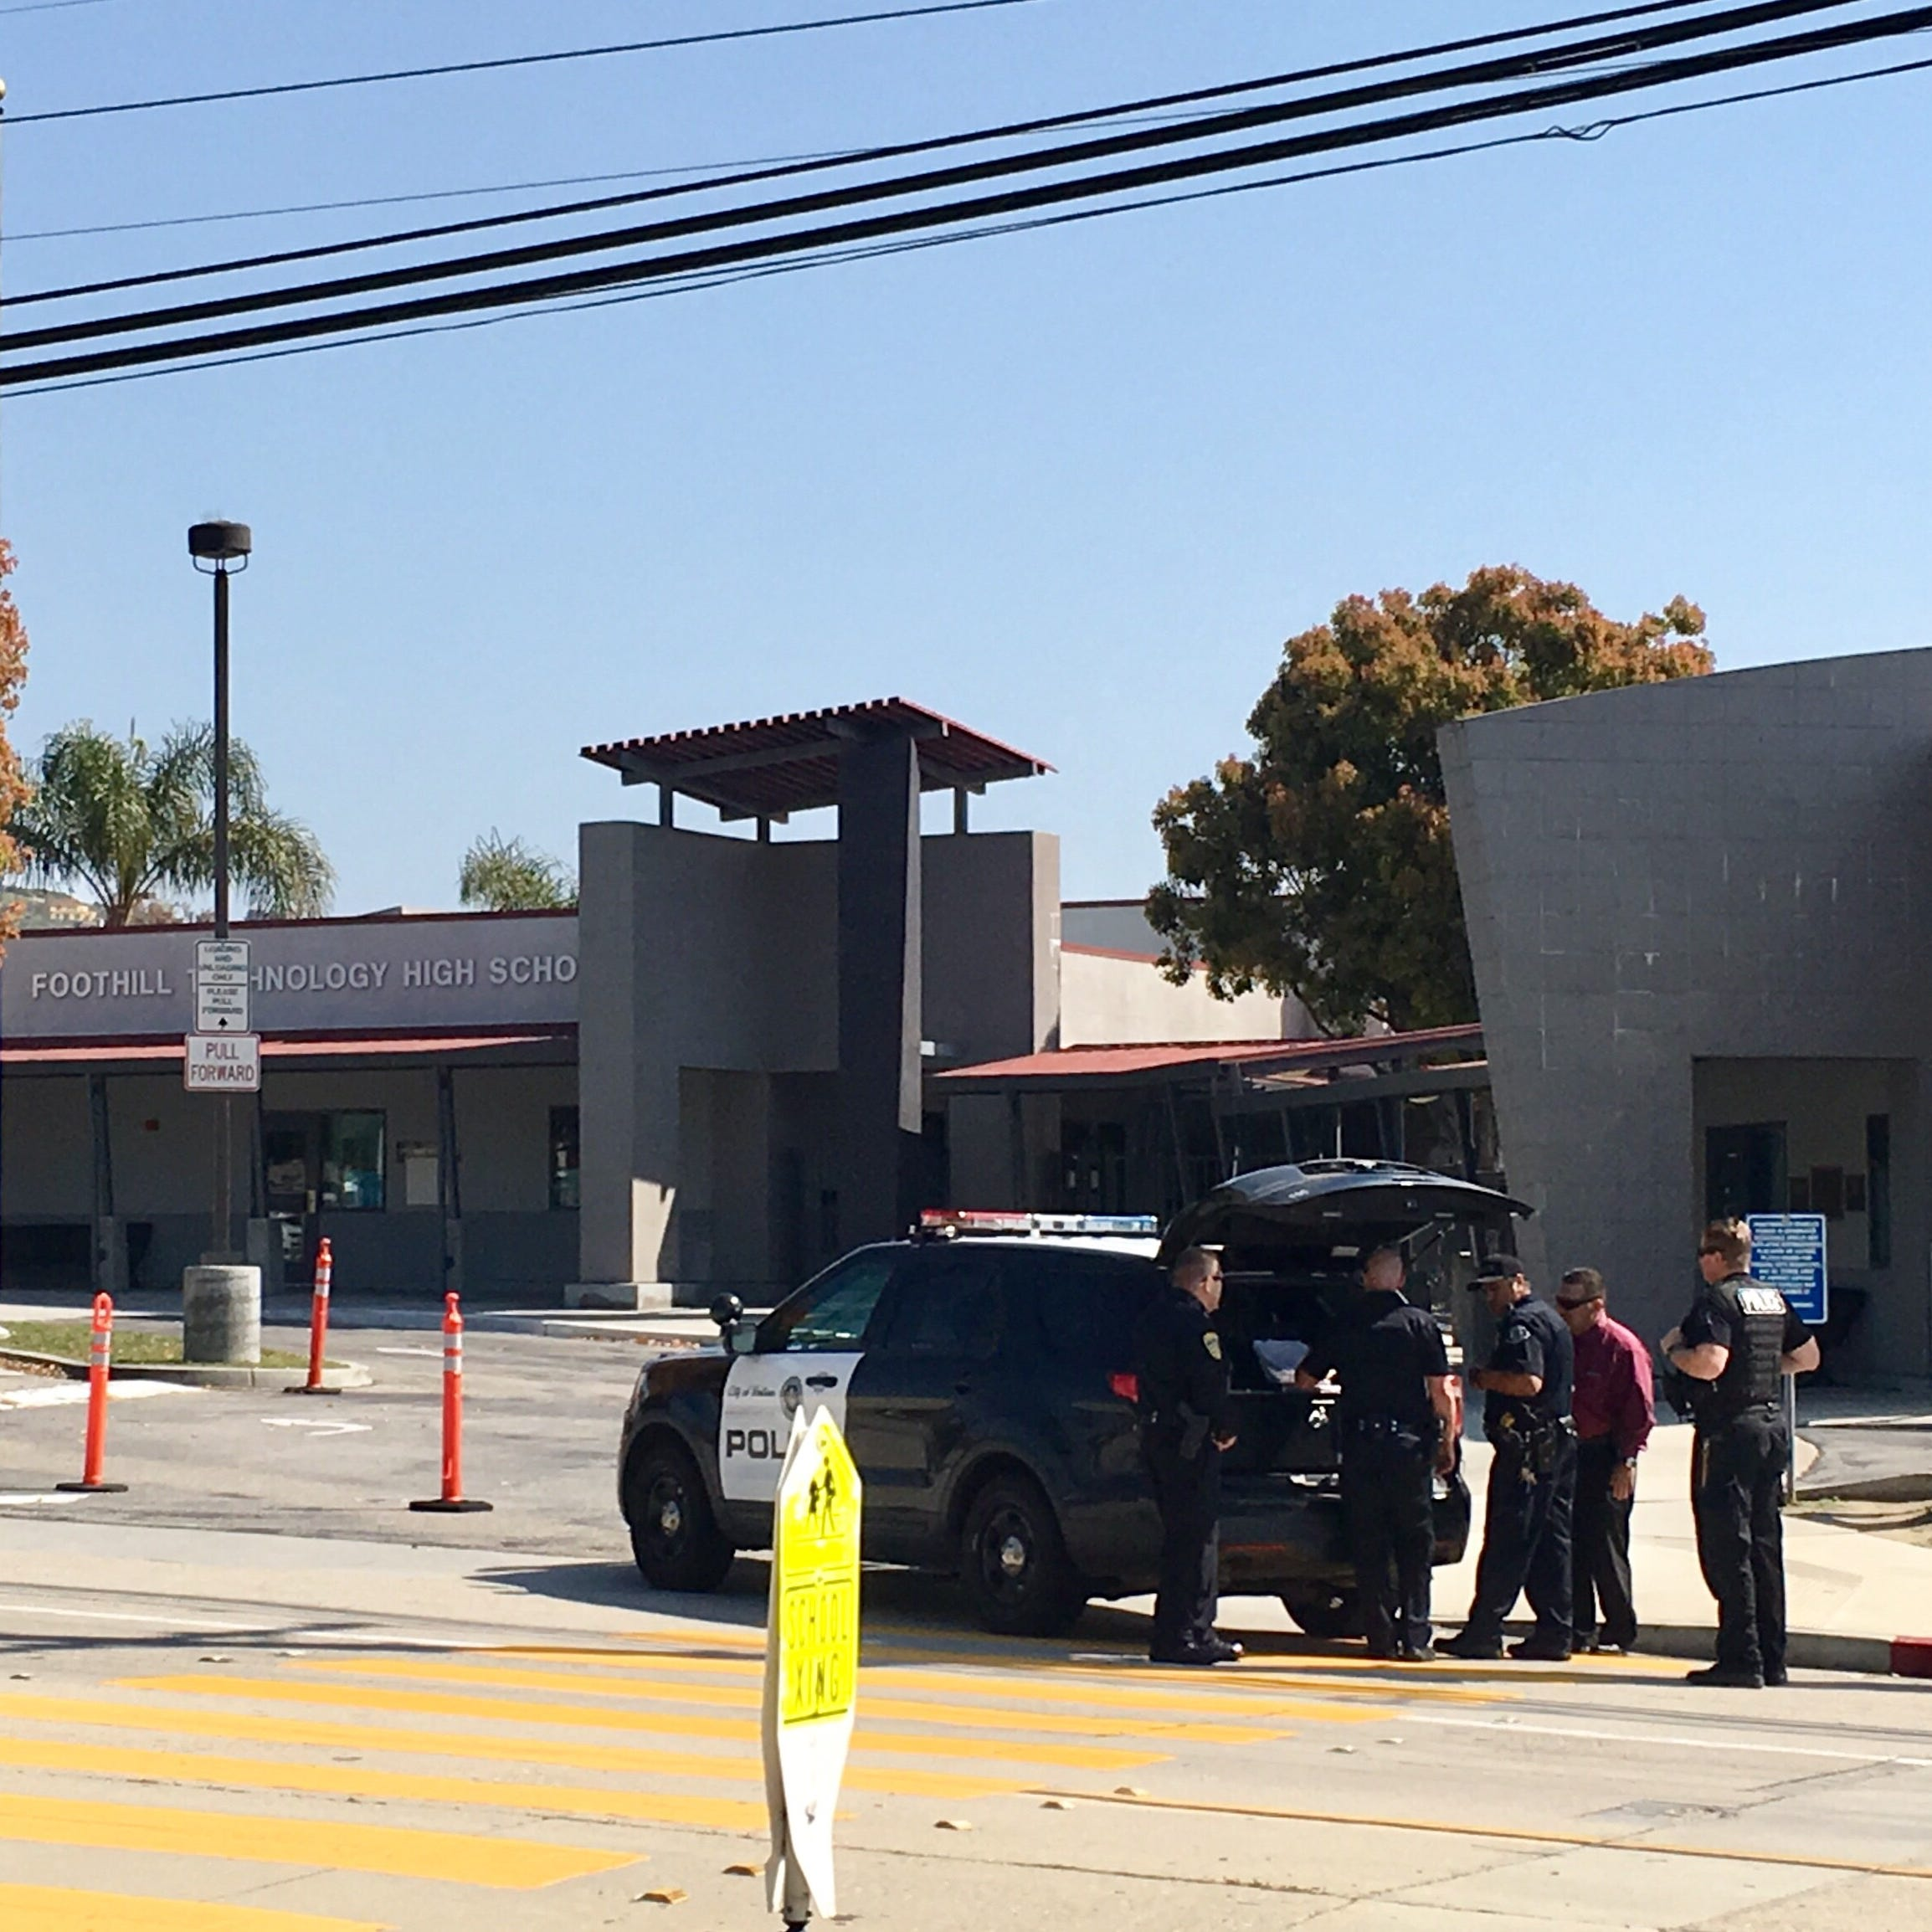 Ventura police at Foothill Tech High School investigating 'very vague' bomb threat